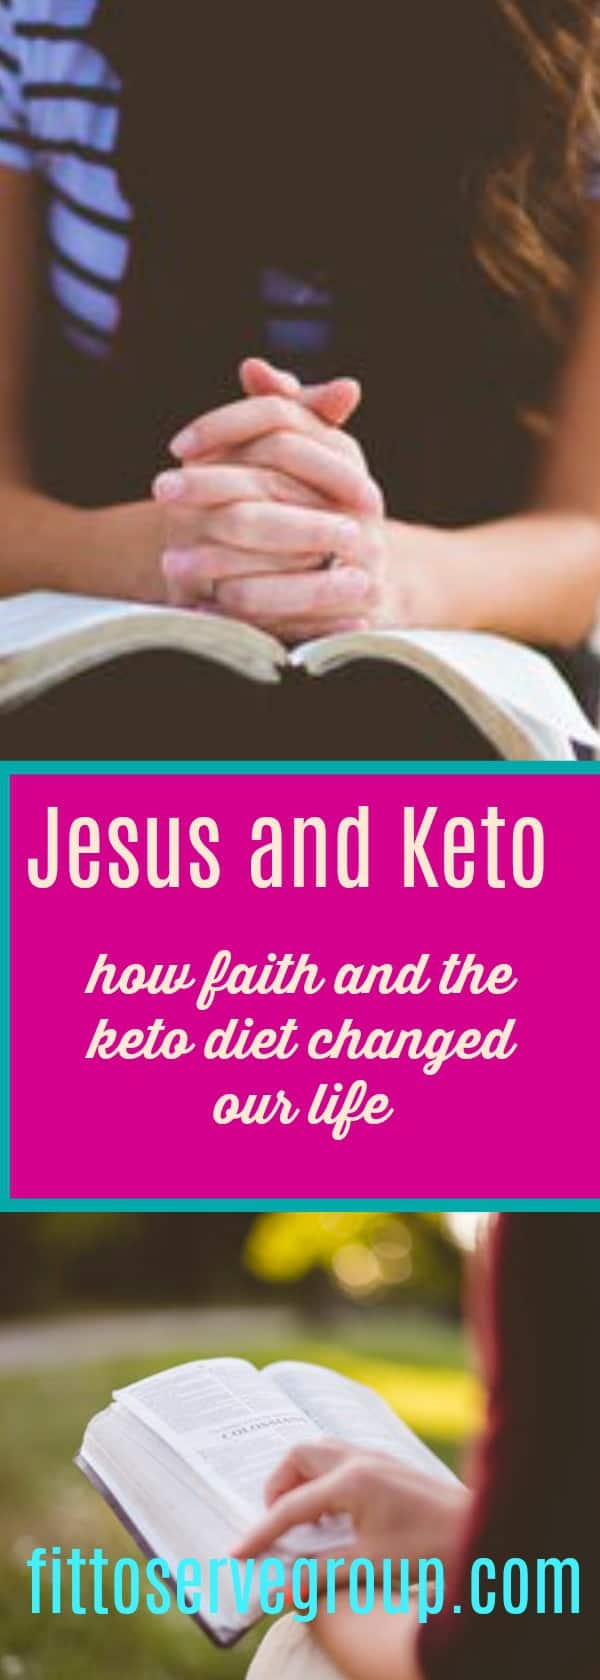 Jesus and keto for weight loss